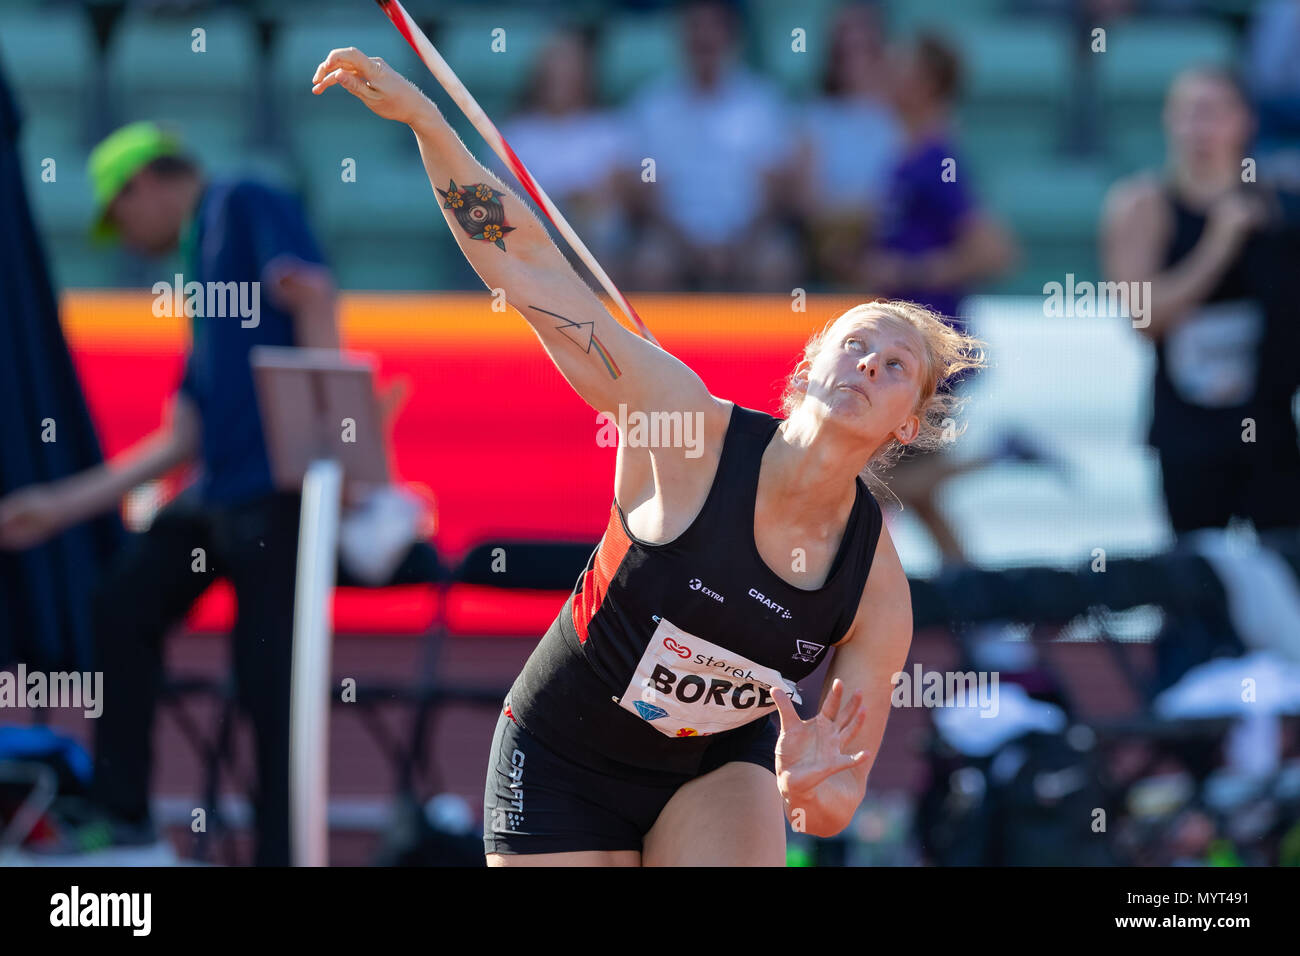 Oslo, Norway. 7th June 2018, Bislett stadium, Oslo, Norway; Bislett Games, Diamond League Athletics meeting; Sigrid Borge of Norway competes in the ladies javelin during the IAAF Diamond League held at the Bislett Stadium Credit: Action Plus Sports Images/Alamy Live News - Stock Image